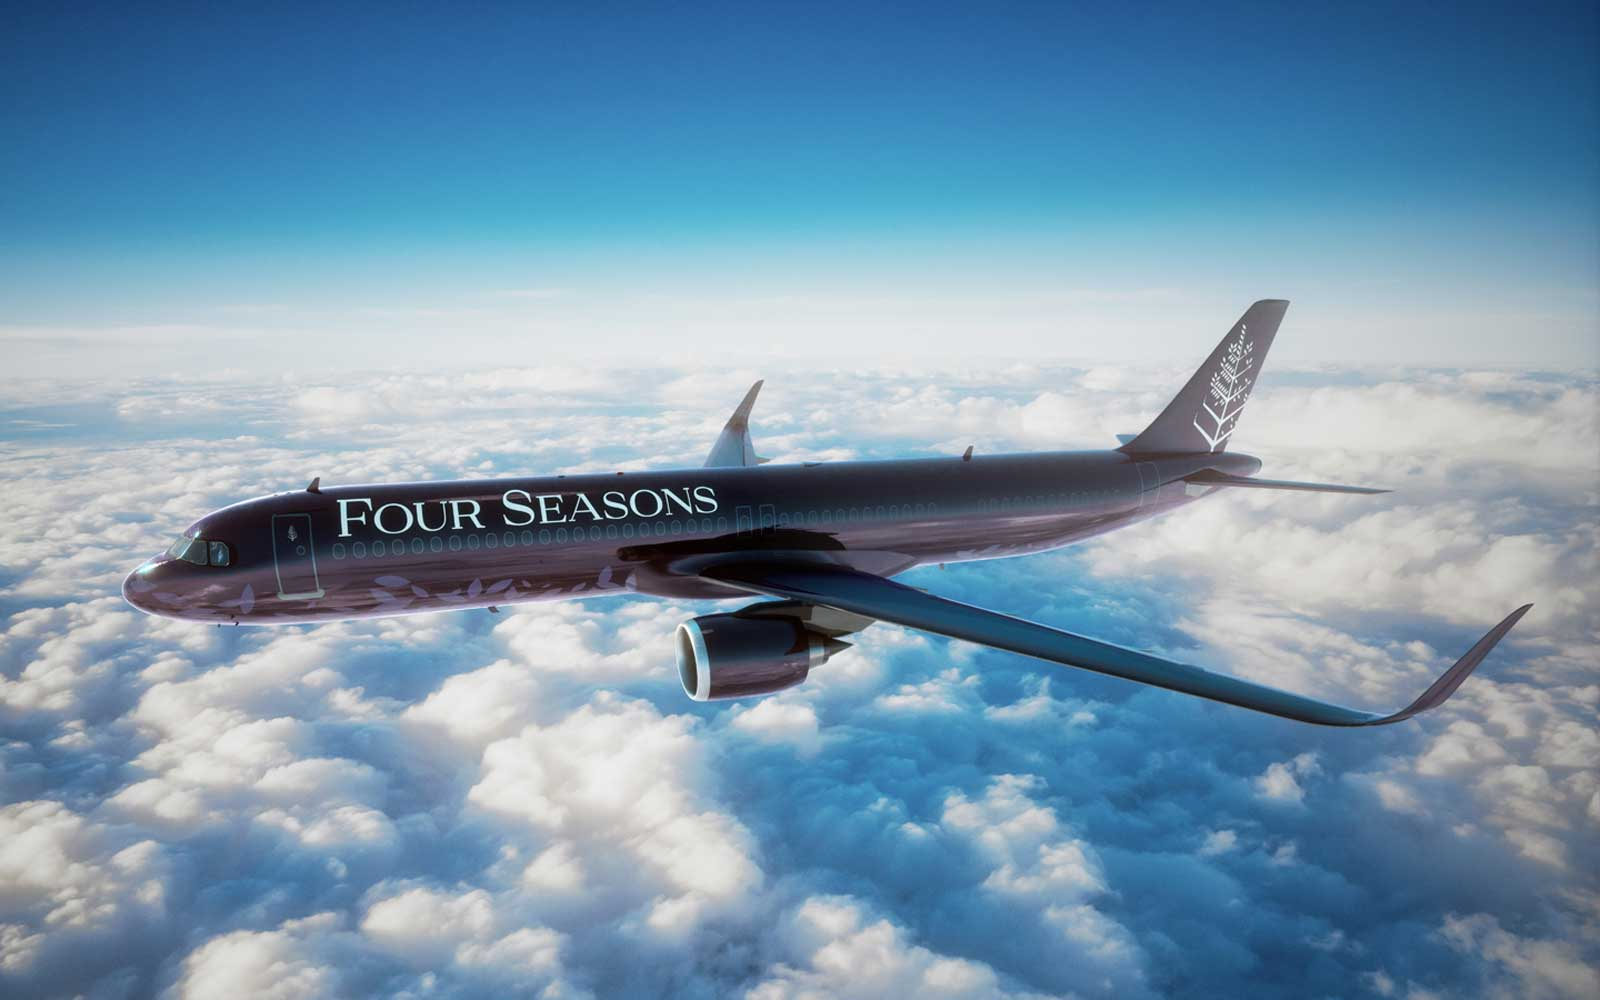 Get an Inside Look at Four Season's New Luxury Jet That Takes Travelers Around the World